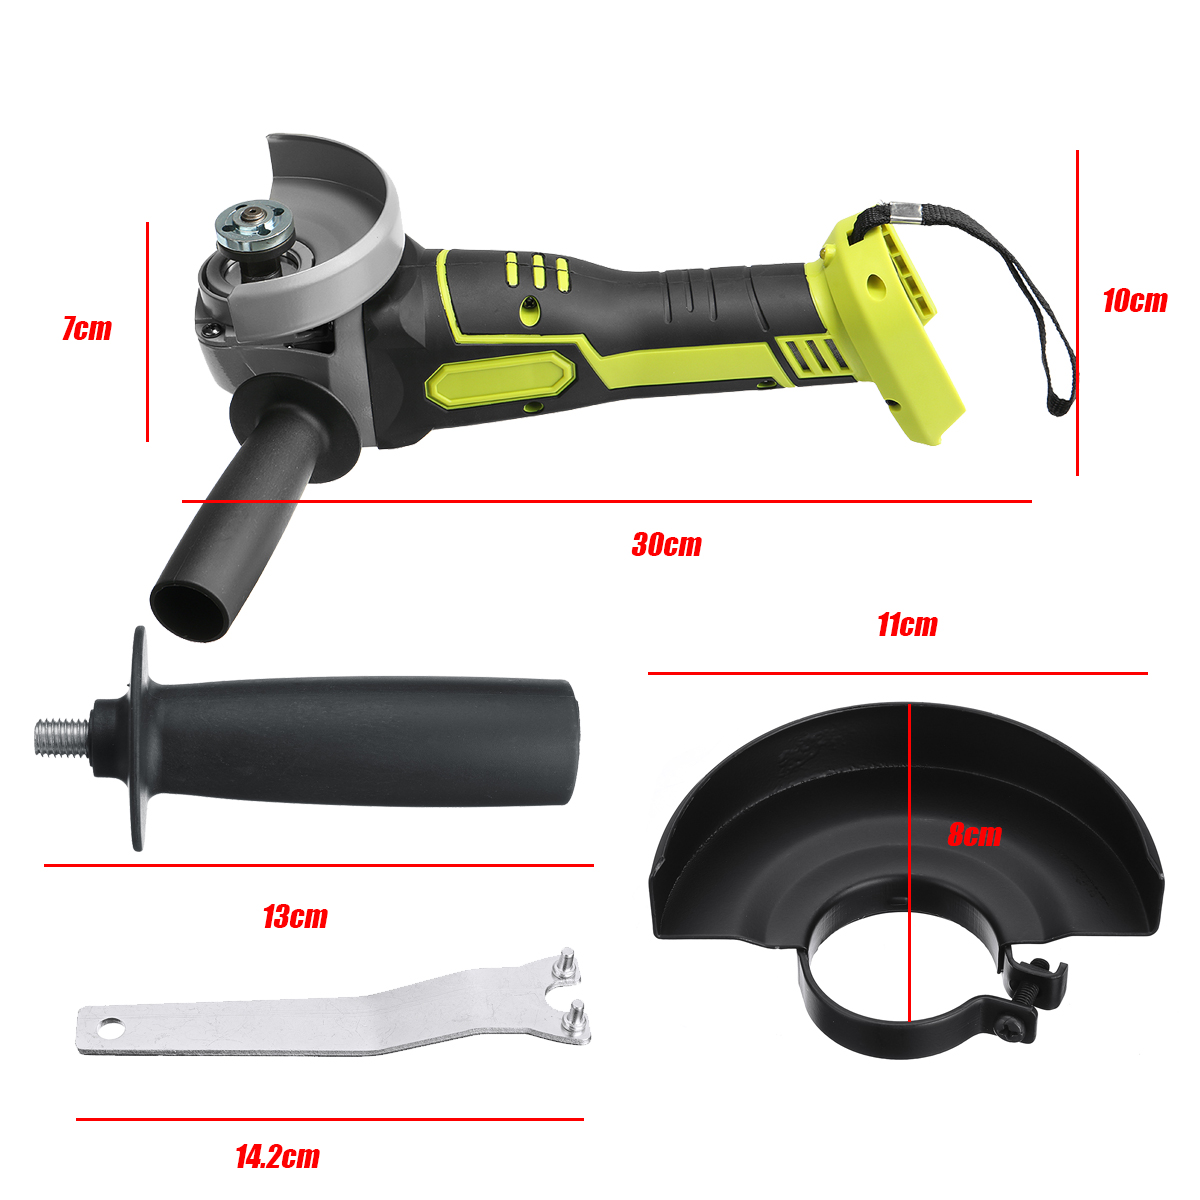 Tools : 100mm 125mm Brushless Cordless Angle Grinder Variable 4 Speed Grinder Machine For 18V Makita Battery Without Battery